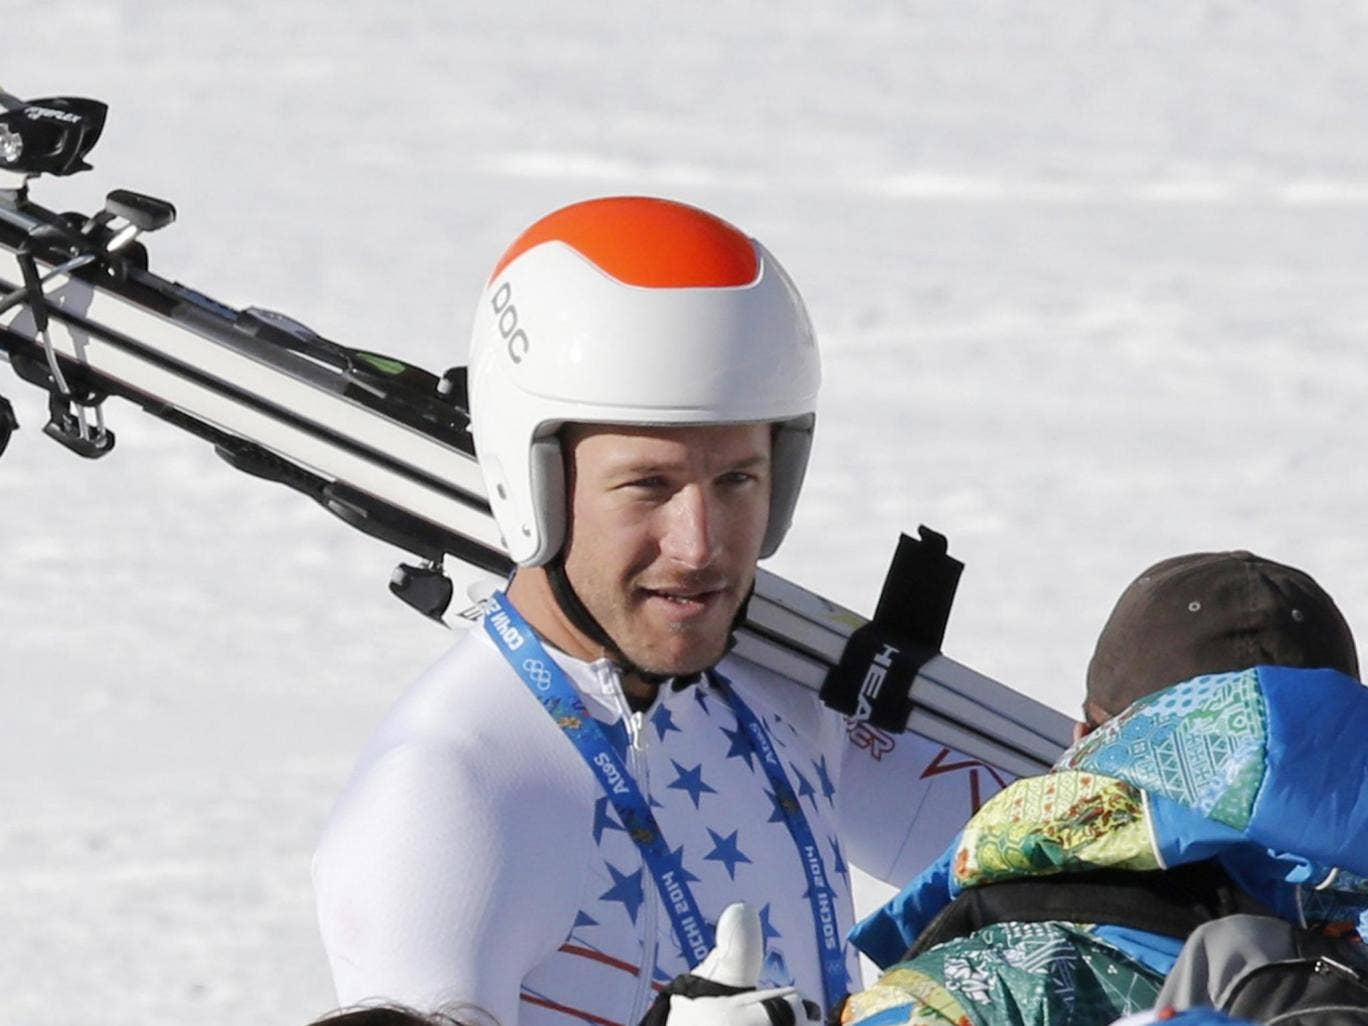 Bode Miller was fastest in practice but struggled in cloudy conditions during yesterday's downhill race